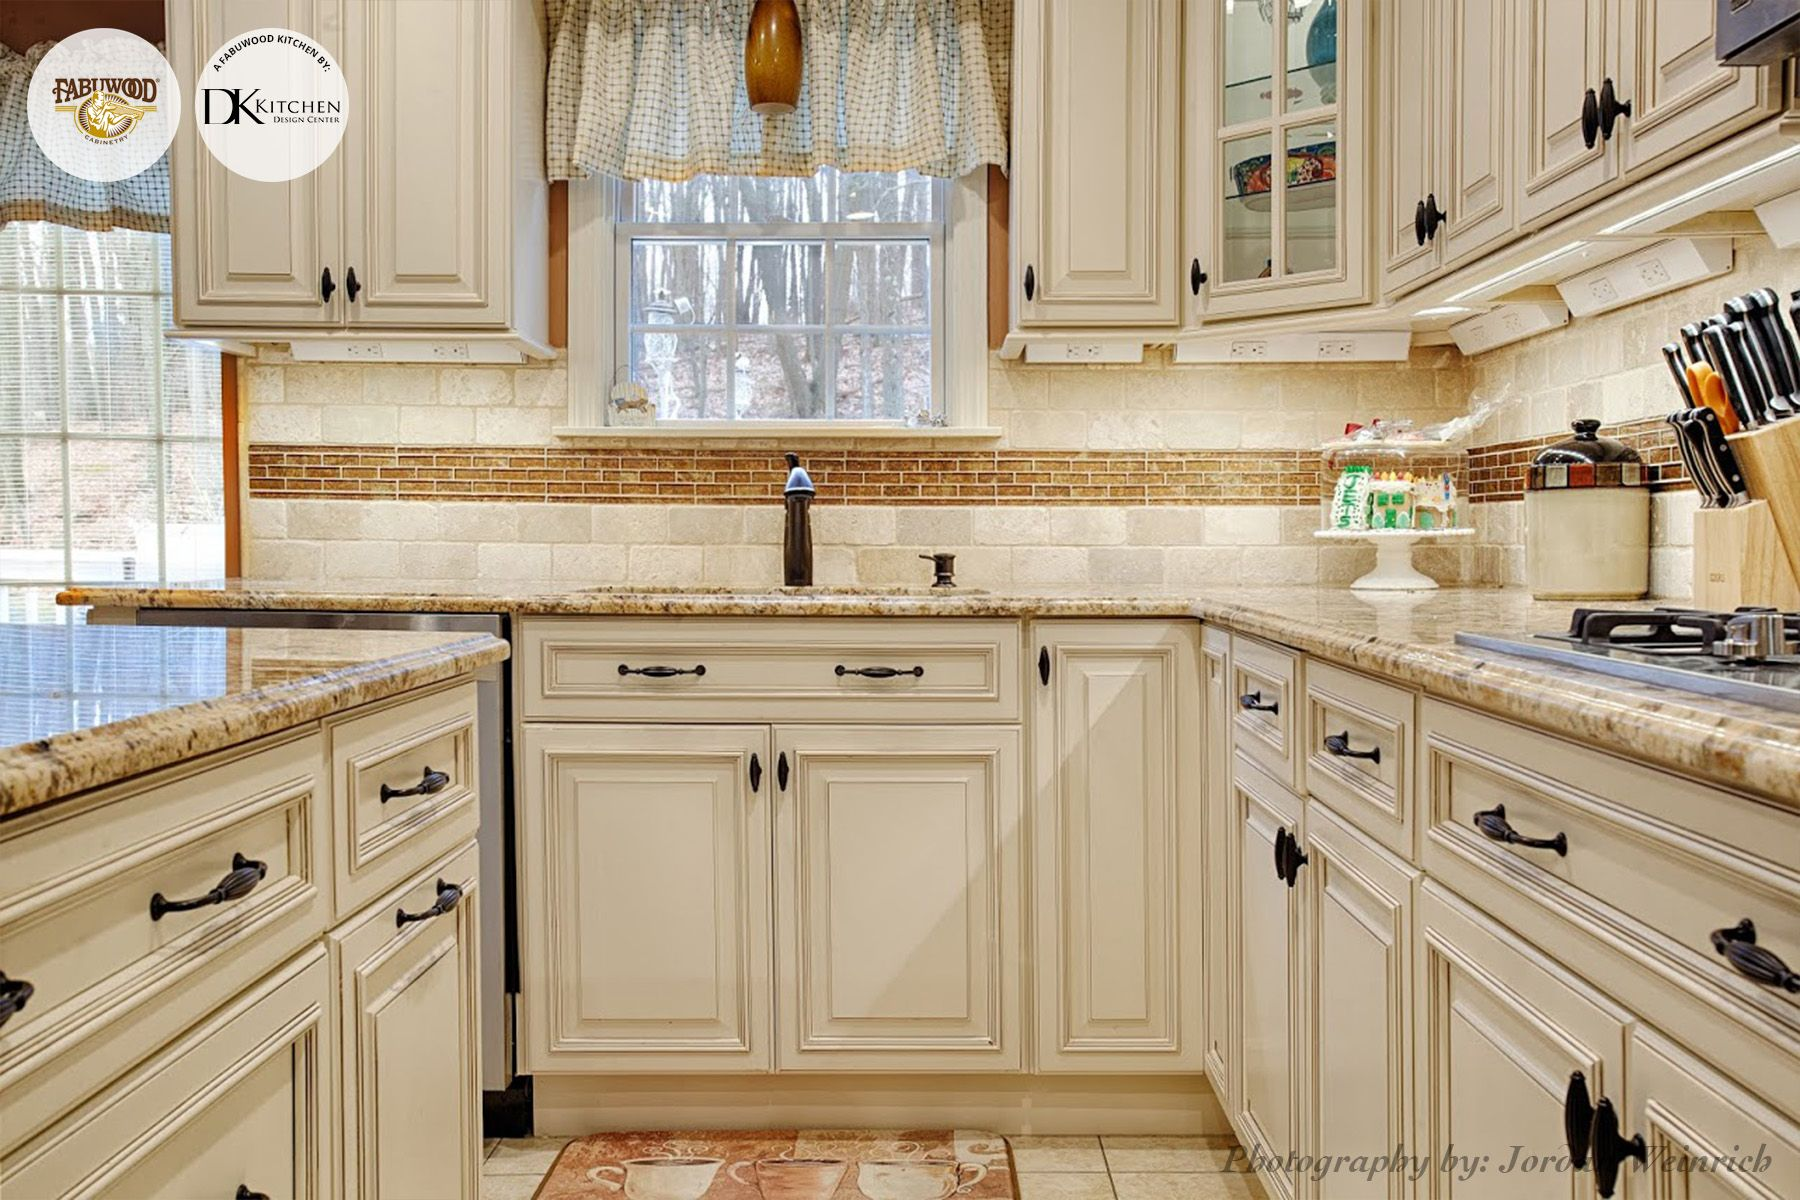 Another Stunning View Of The Wellington Kitchen In Ivory Glaze Completed By Dk Kitchen Design Center Kitchen Design Centre Kitchen Tuscan Kitchen